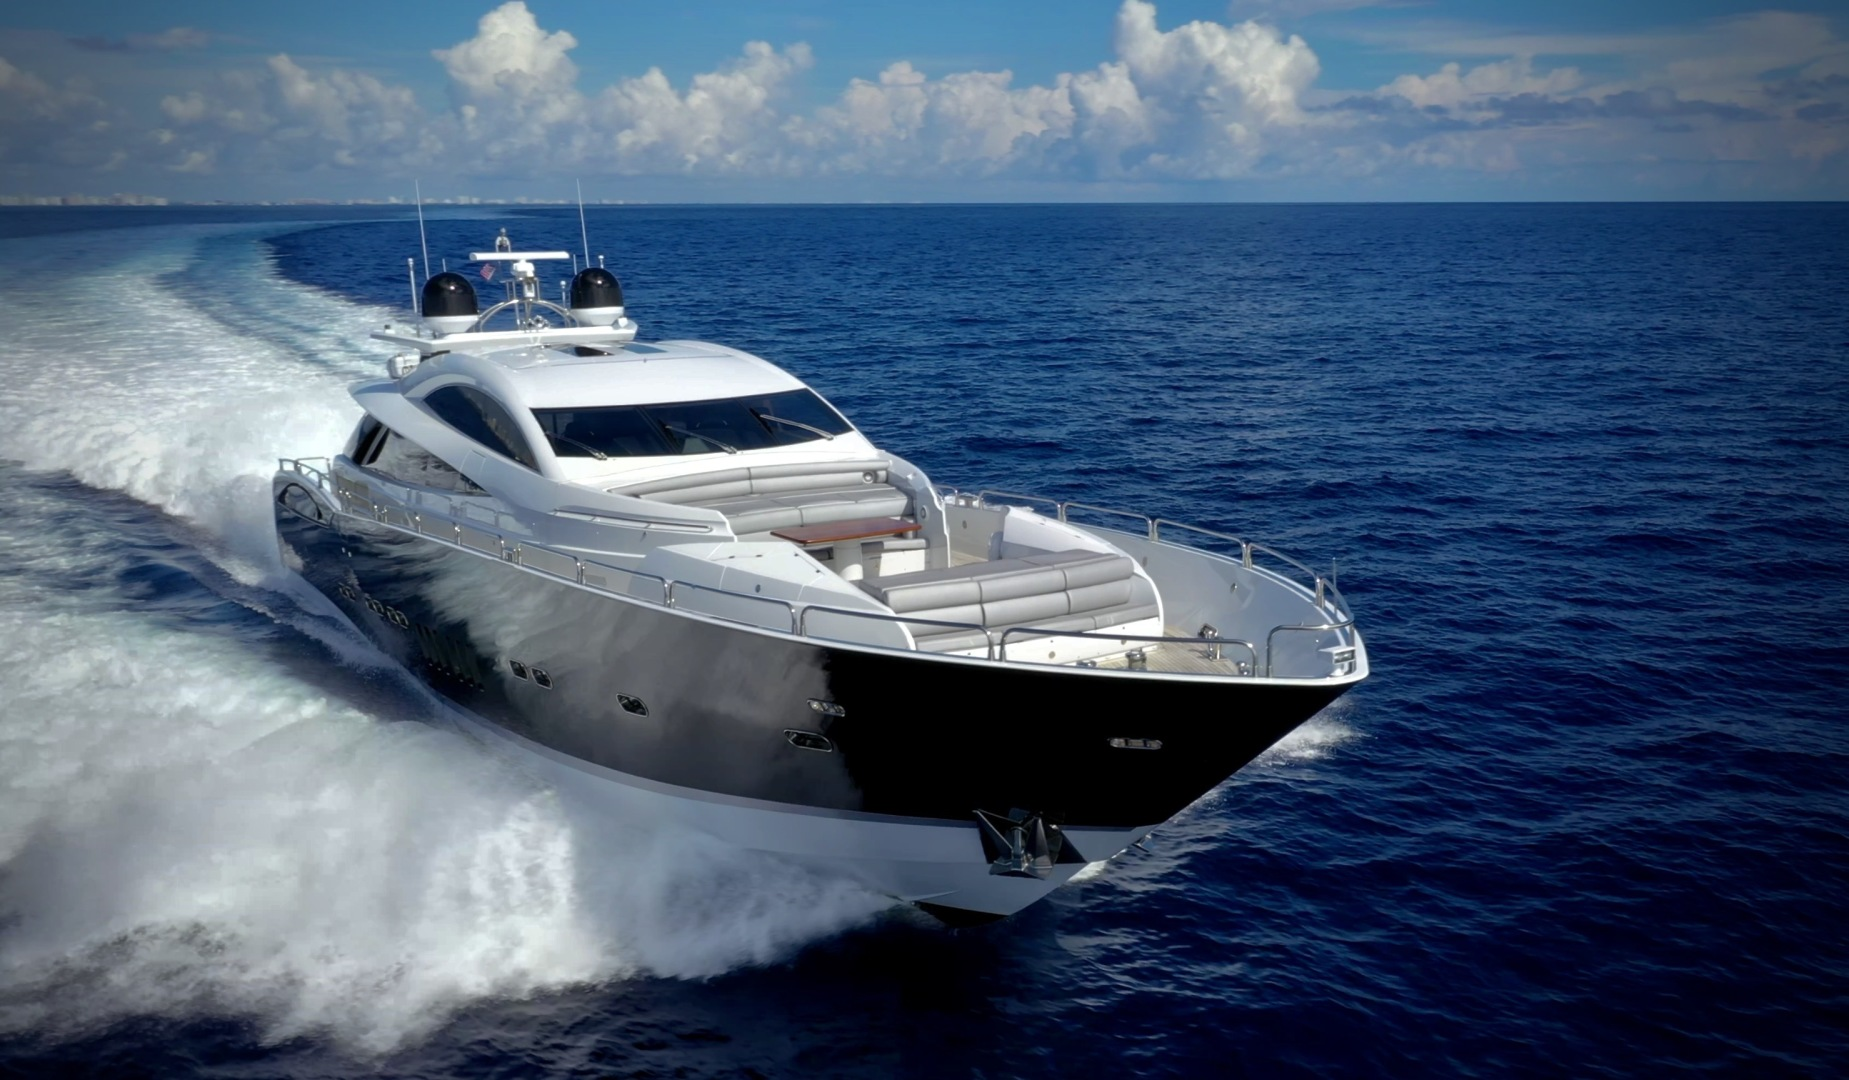 Sunseeker-Predator 2008-Double D Fort Lauderdale-Florida-United States-1501080 | Thumbnail